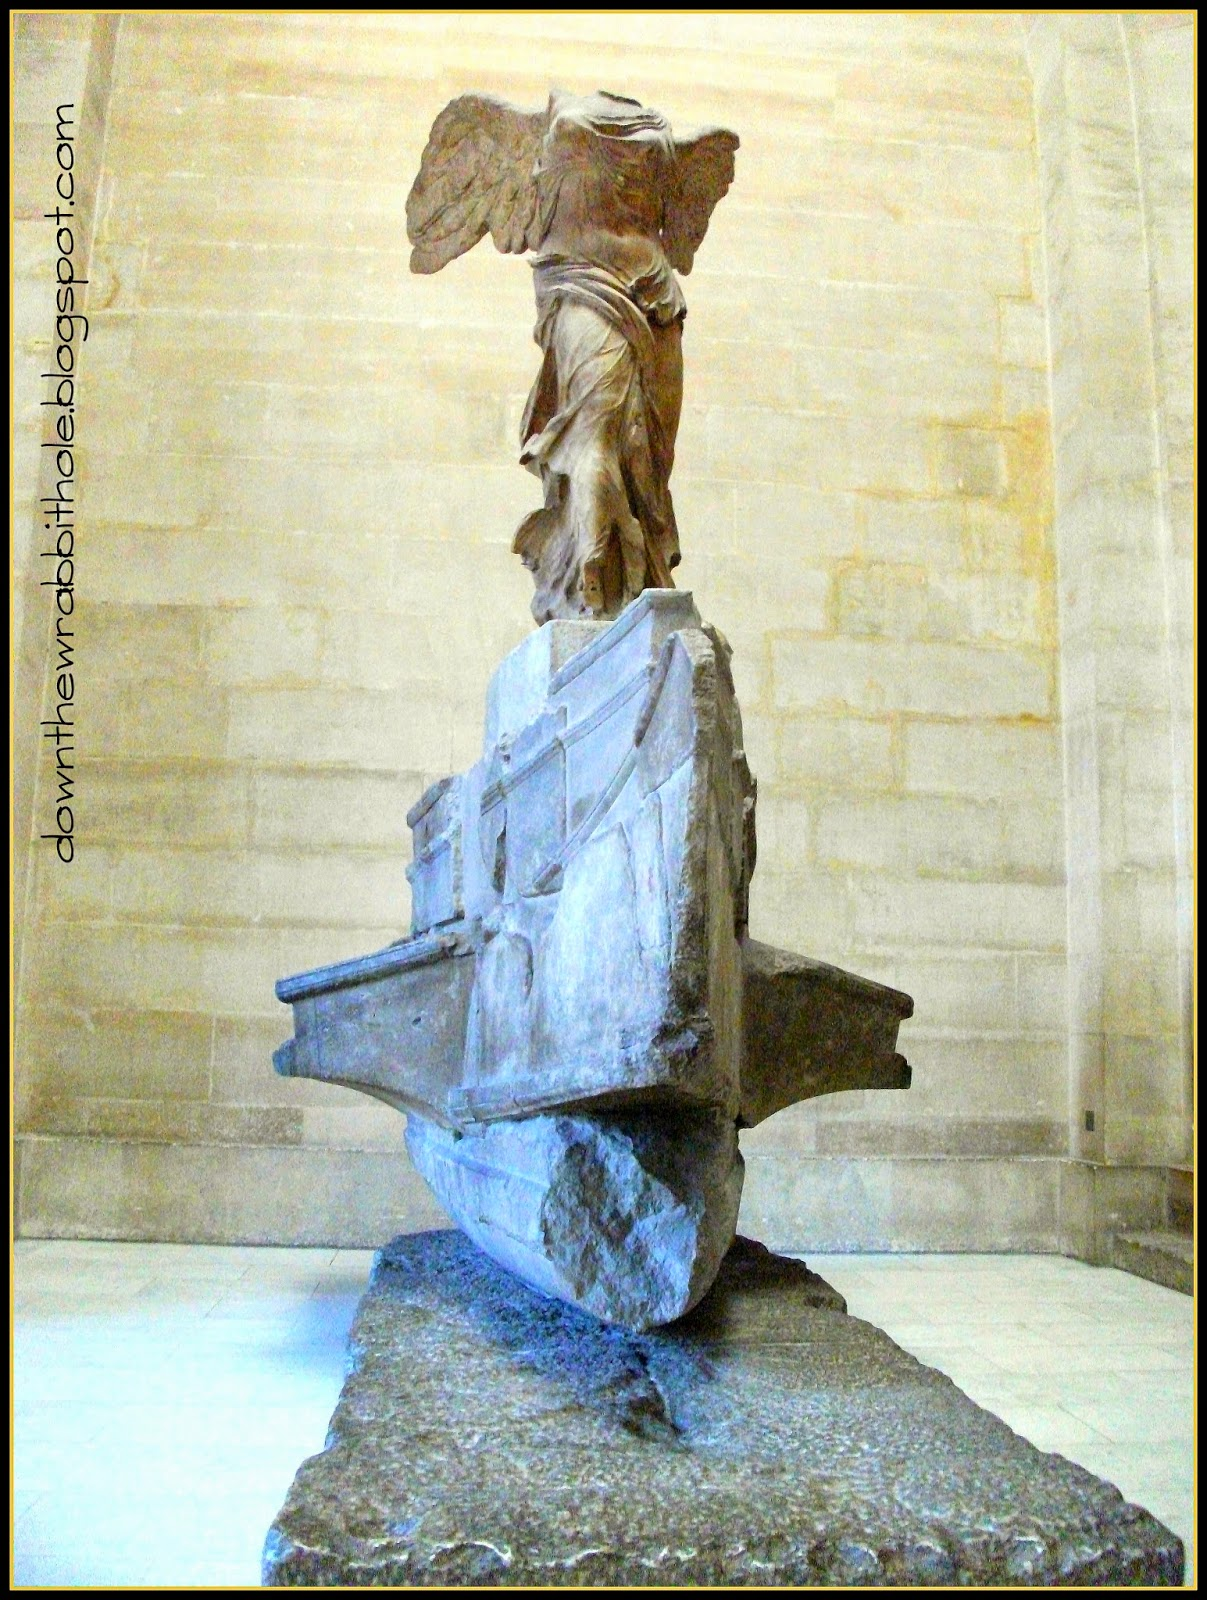 Louvre Museum, Paris, France, art in Louvre